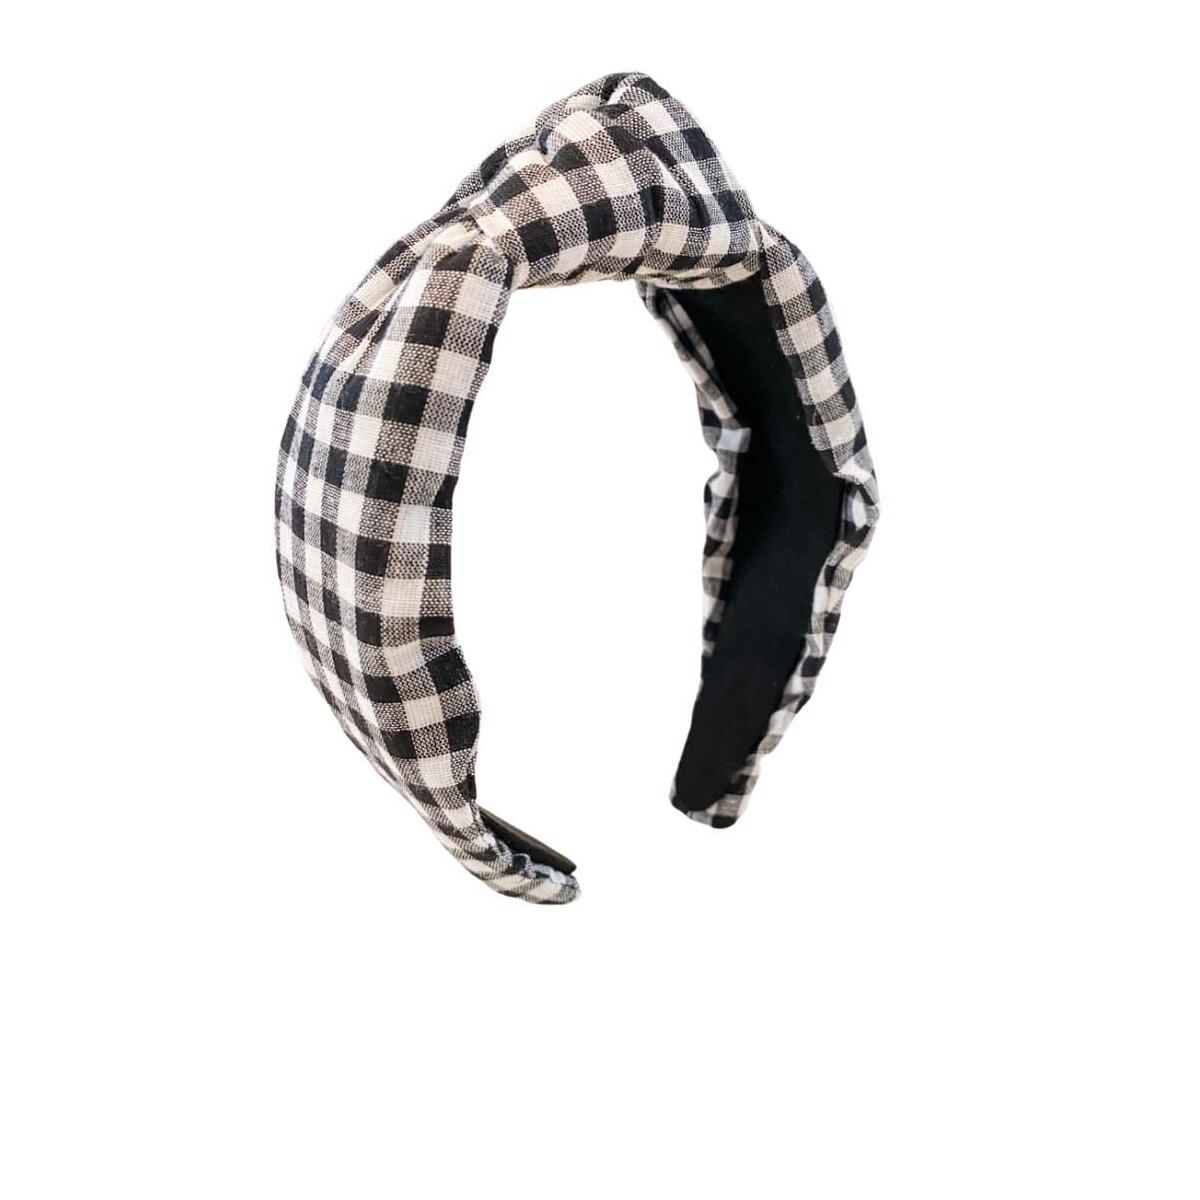 Women's Top Knot Headband - Rebate is for any SINGLE headband on the listing (none of the packs of 3/4 included)